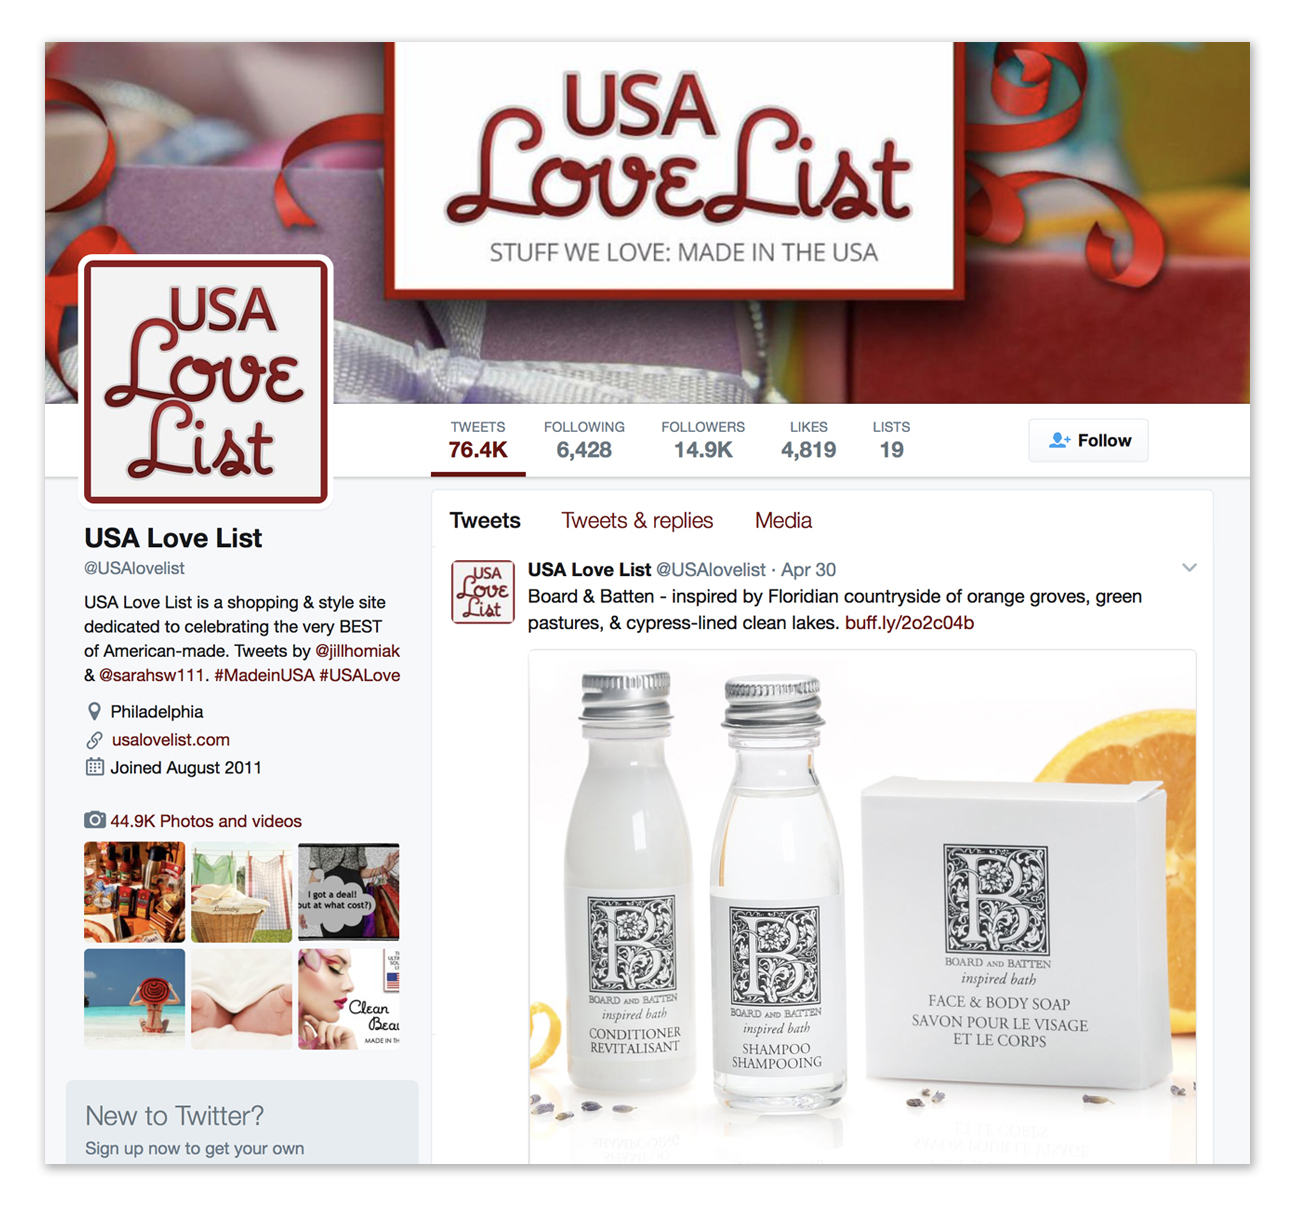 Wash Rinse Repeat The Marietta Hospitality Blog Innovative Circuit Board Soap Lotion Dispenser Glass Potty Training Concepts Were Excited To See Our Brand Partner And Batten Both Featured On Usa Love Lists Twitter Page As Two Made In Companies Its